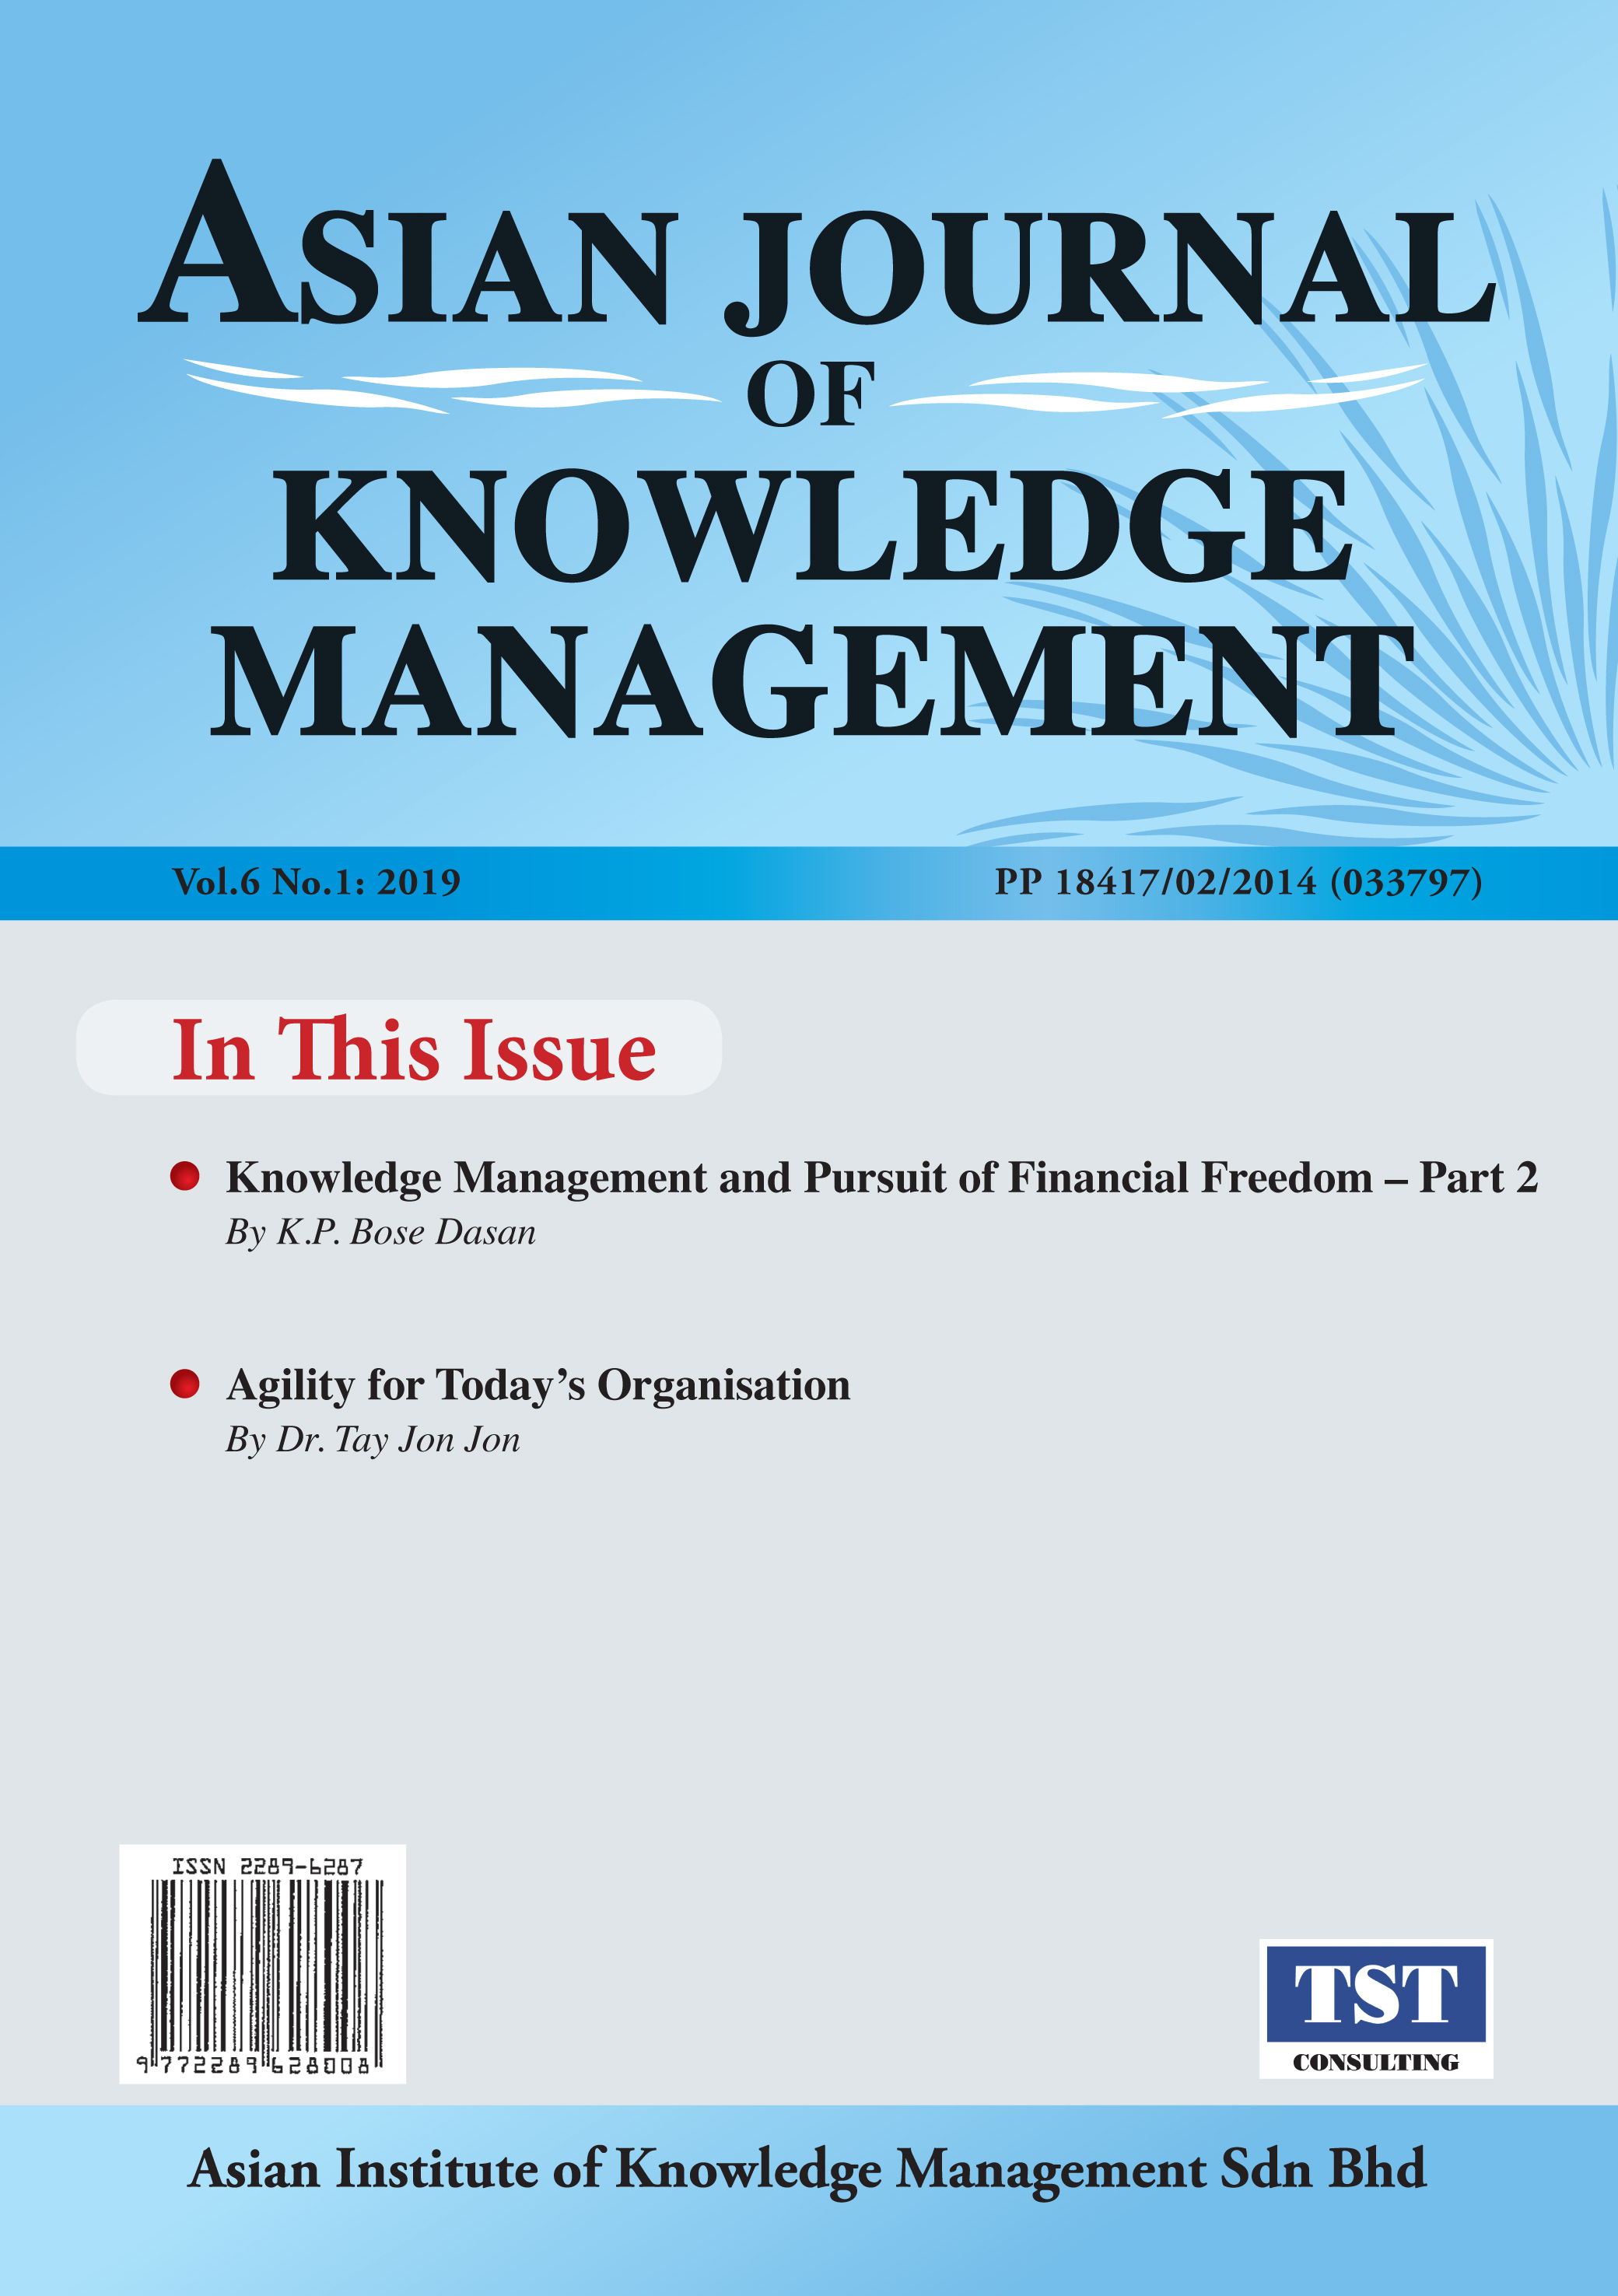 Asian Journal of Knowledge Management